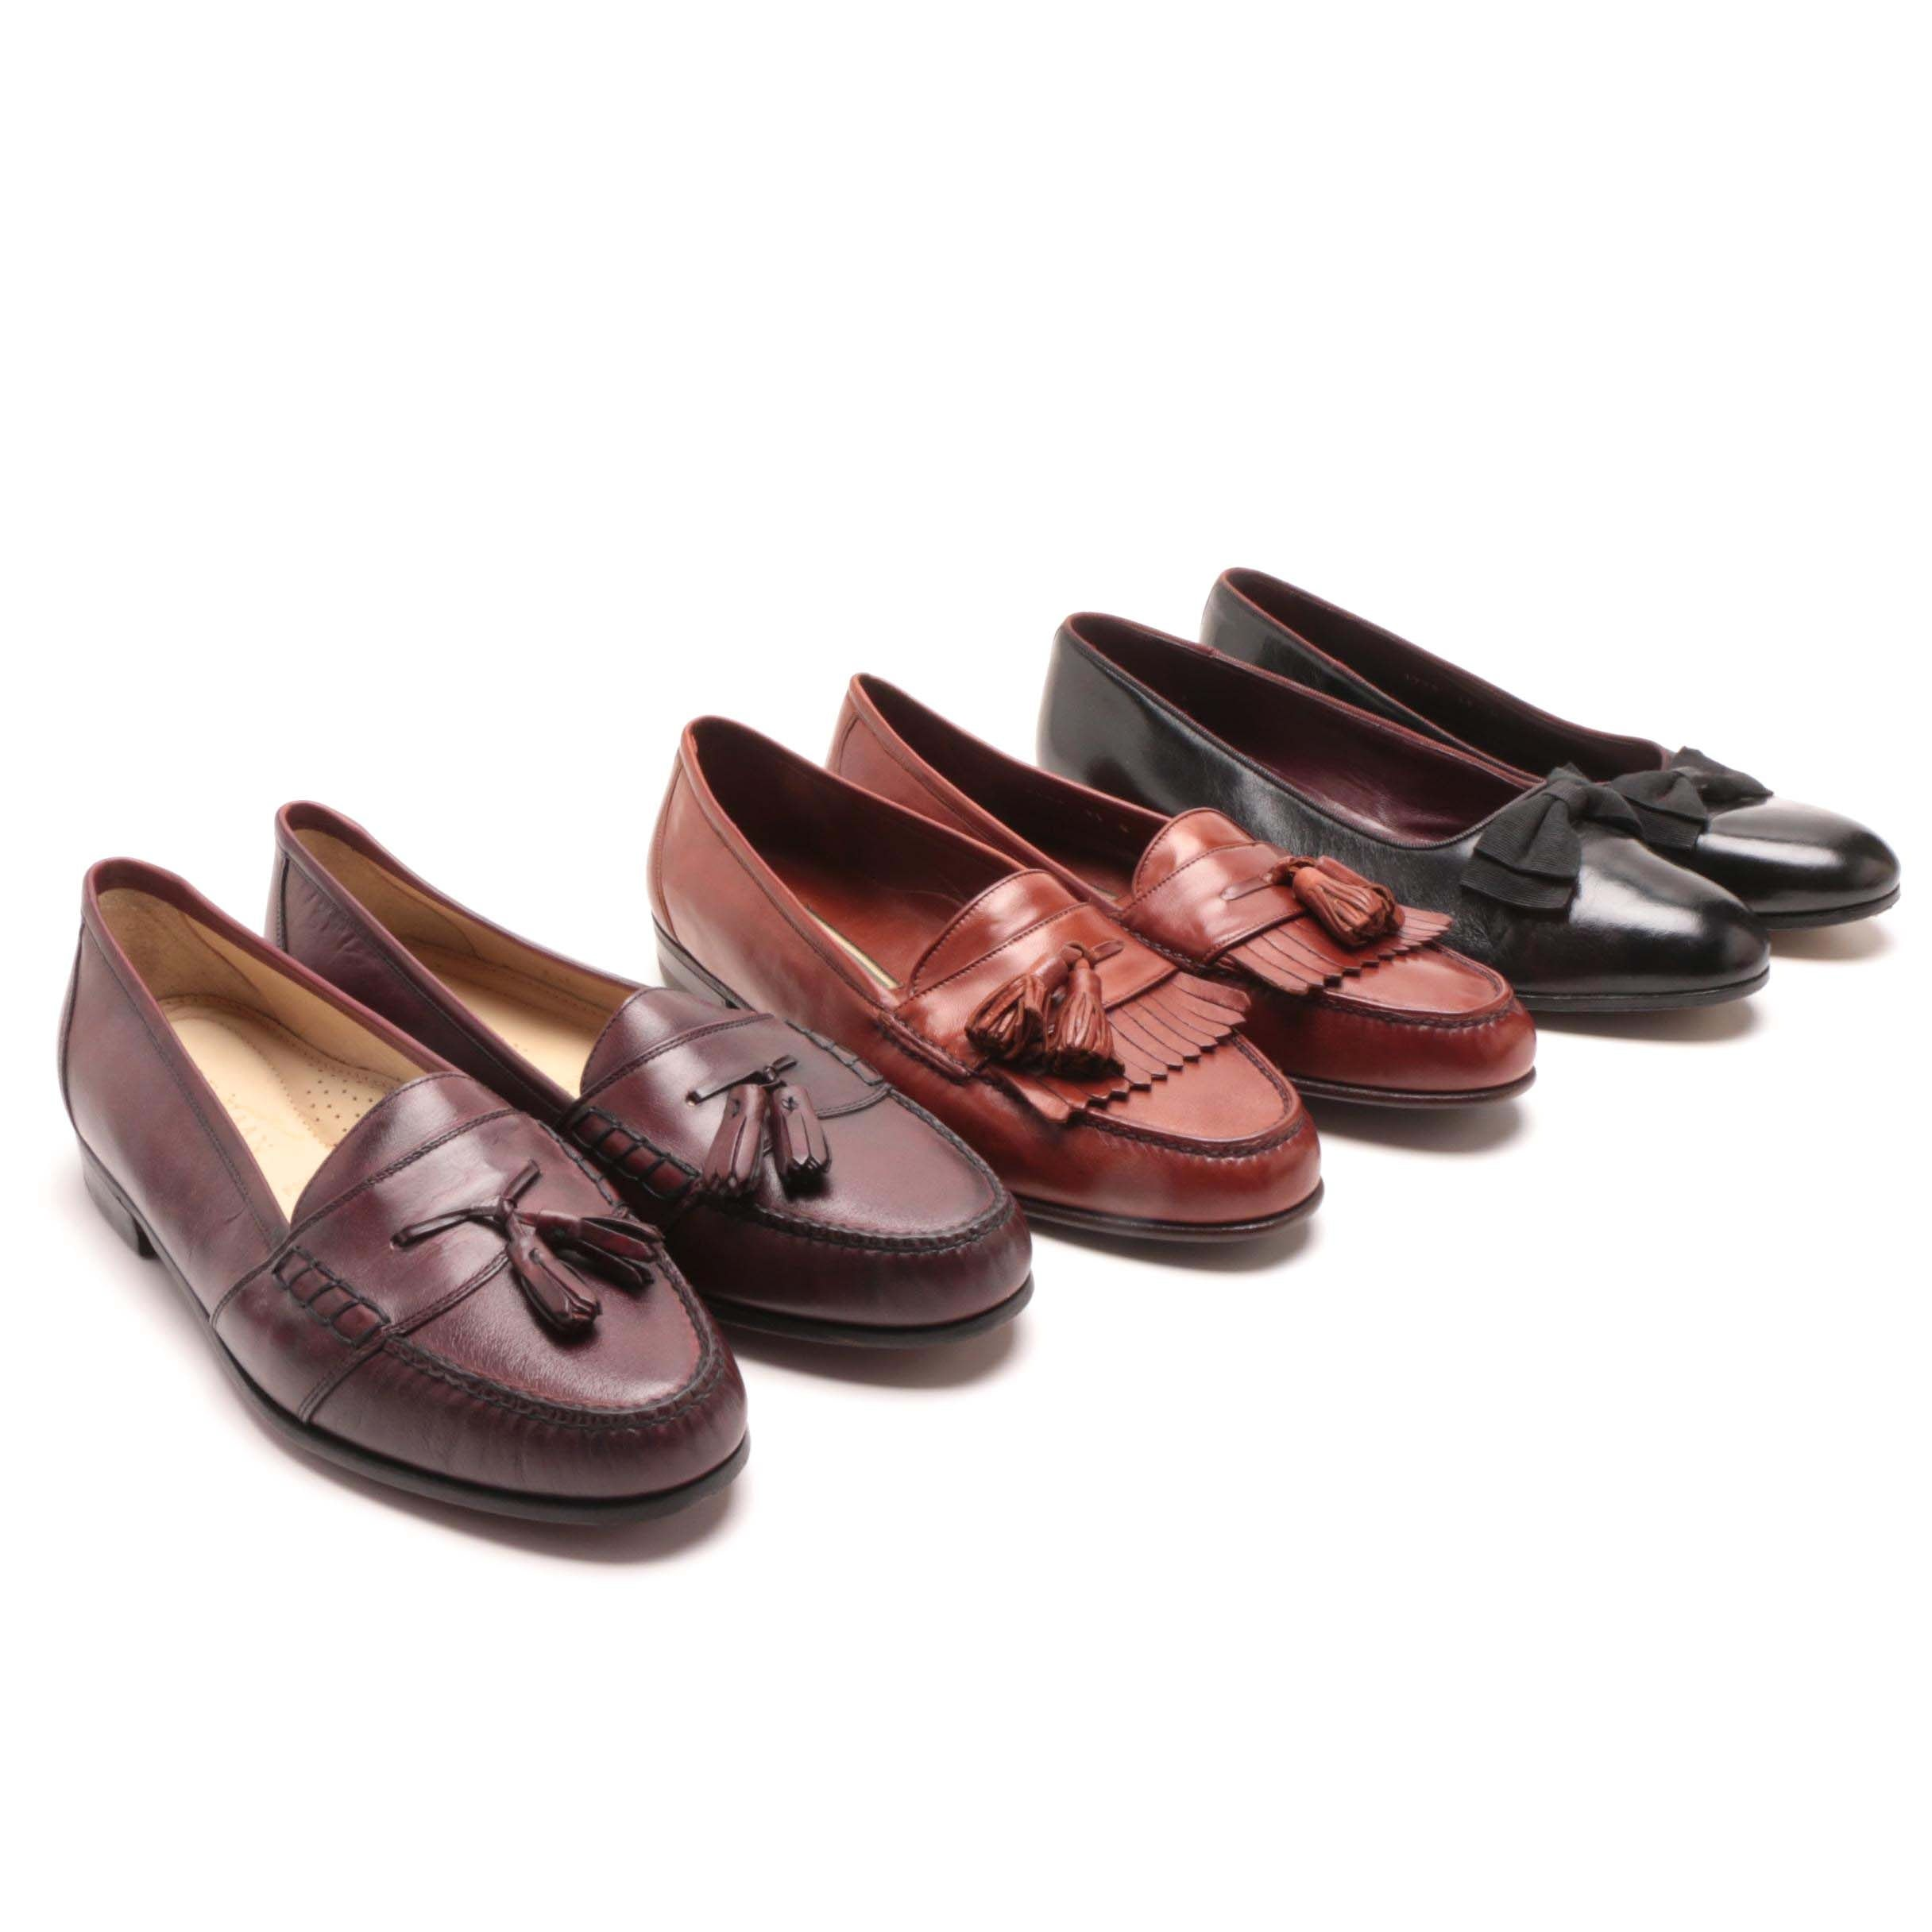 Men's Cole Haan Leather Tasseled Loafers and Dress Loafers